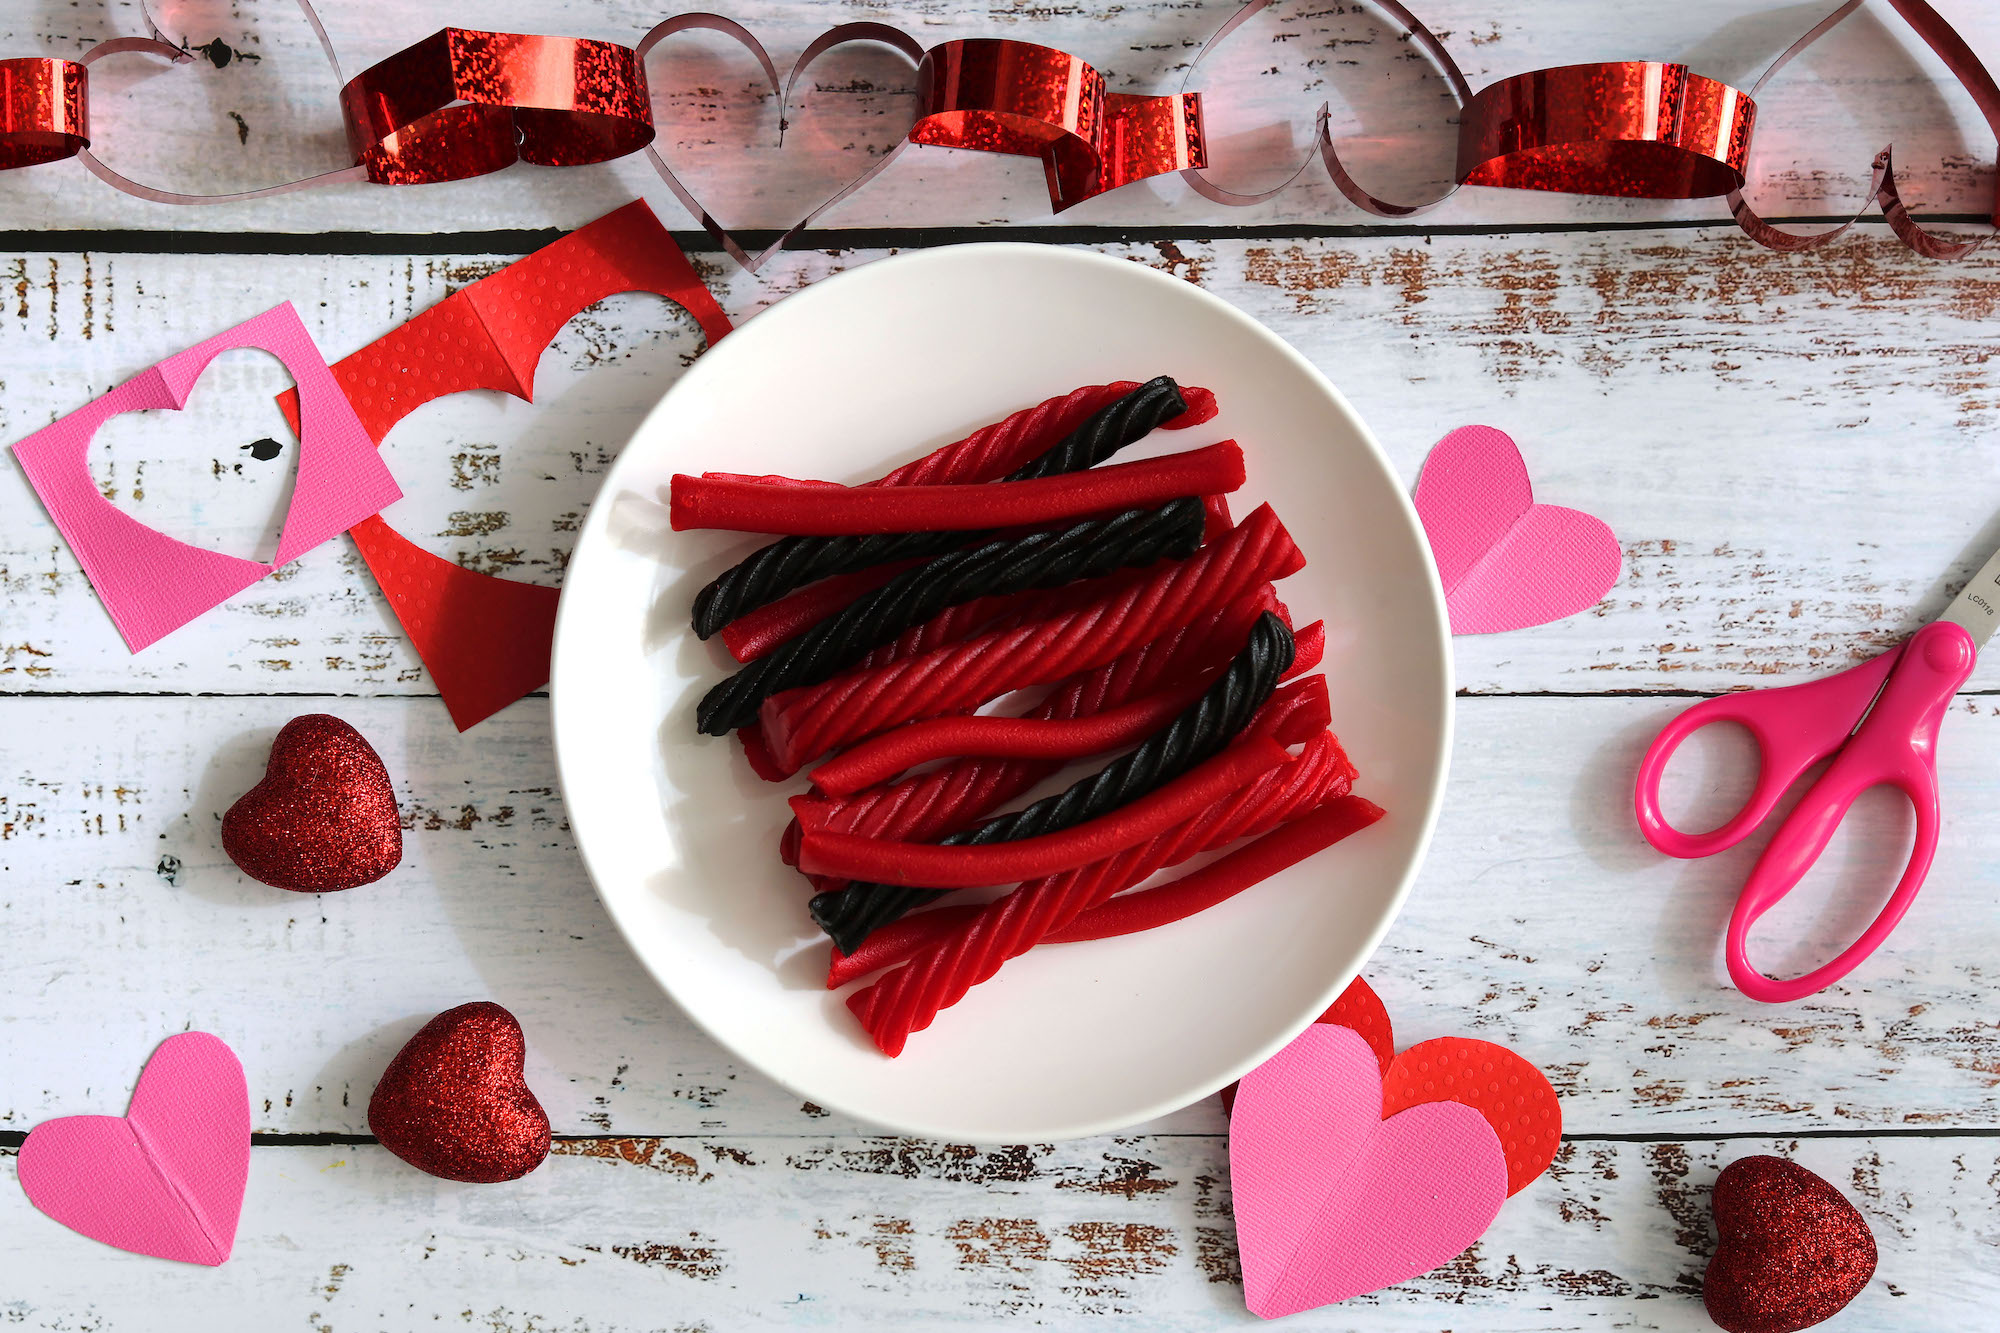 American Licorice Company Product Images   Valentine's Day 2019